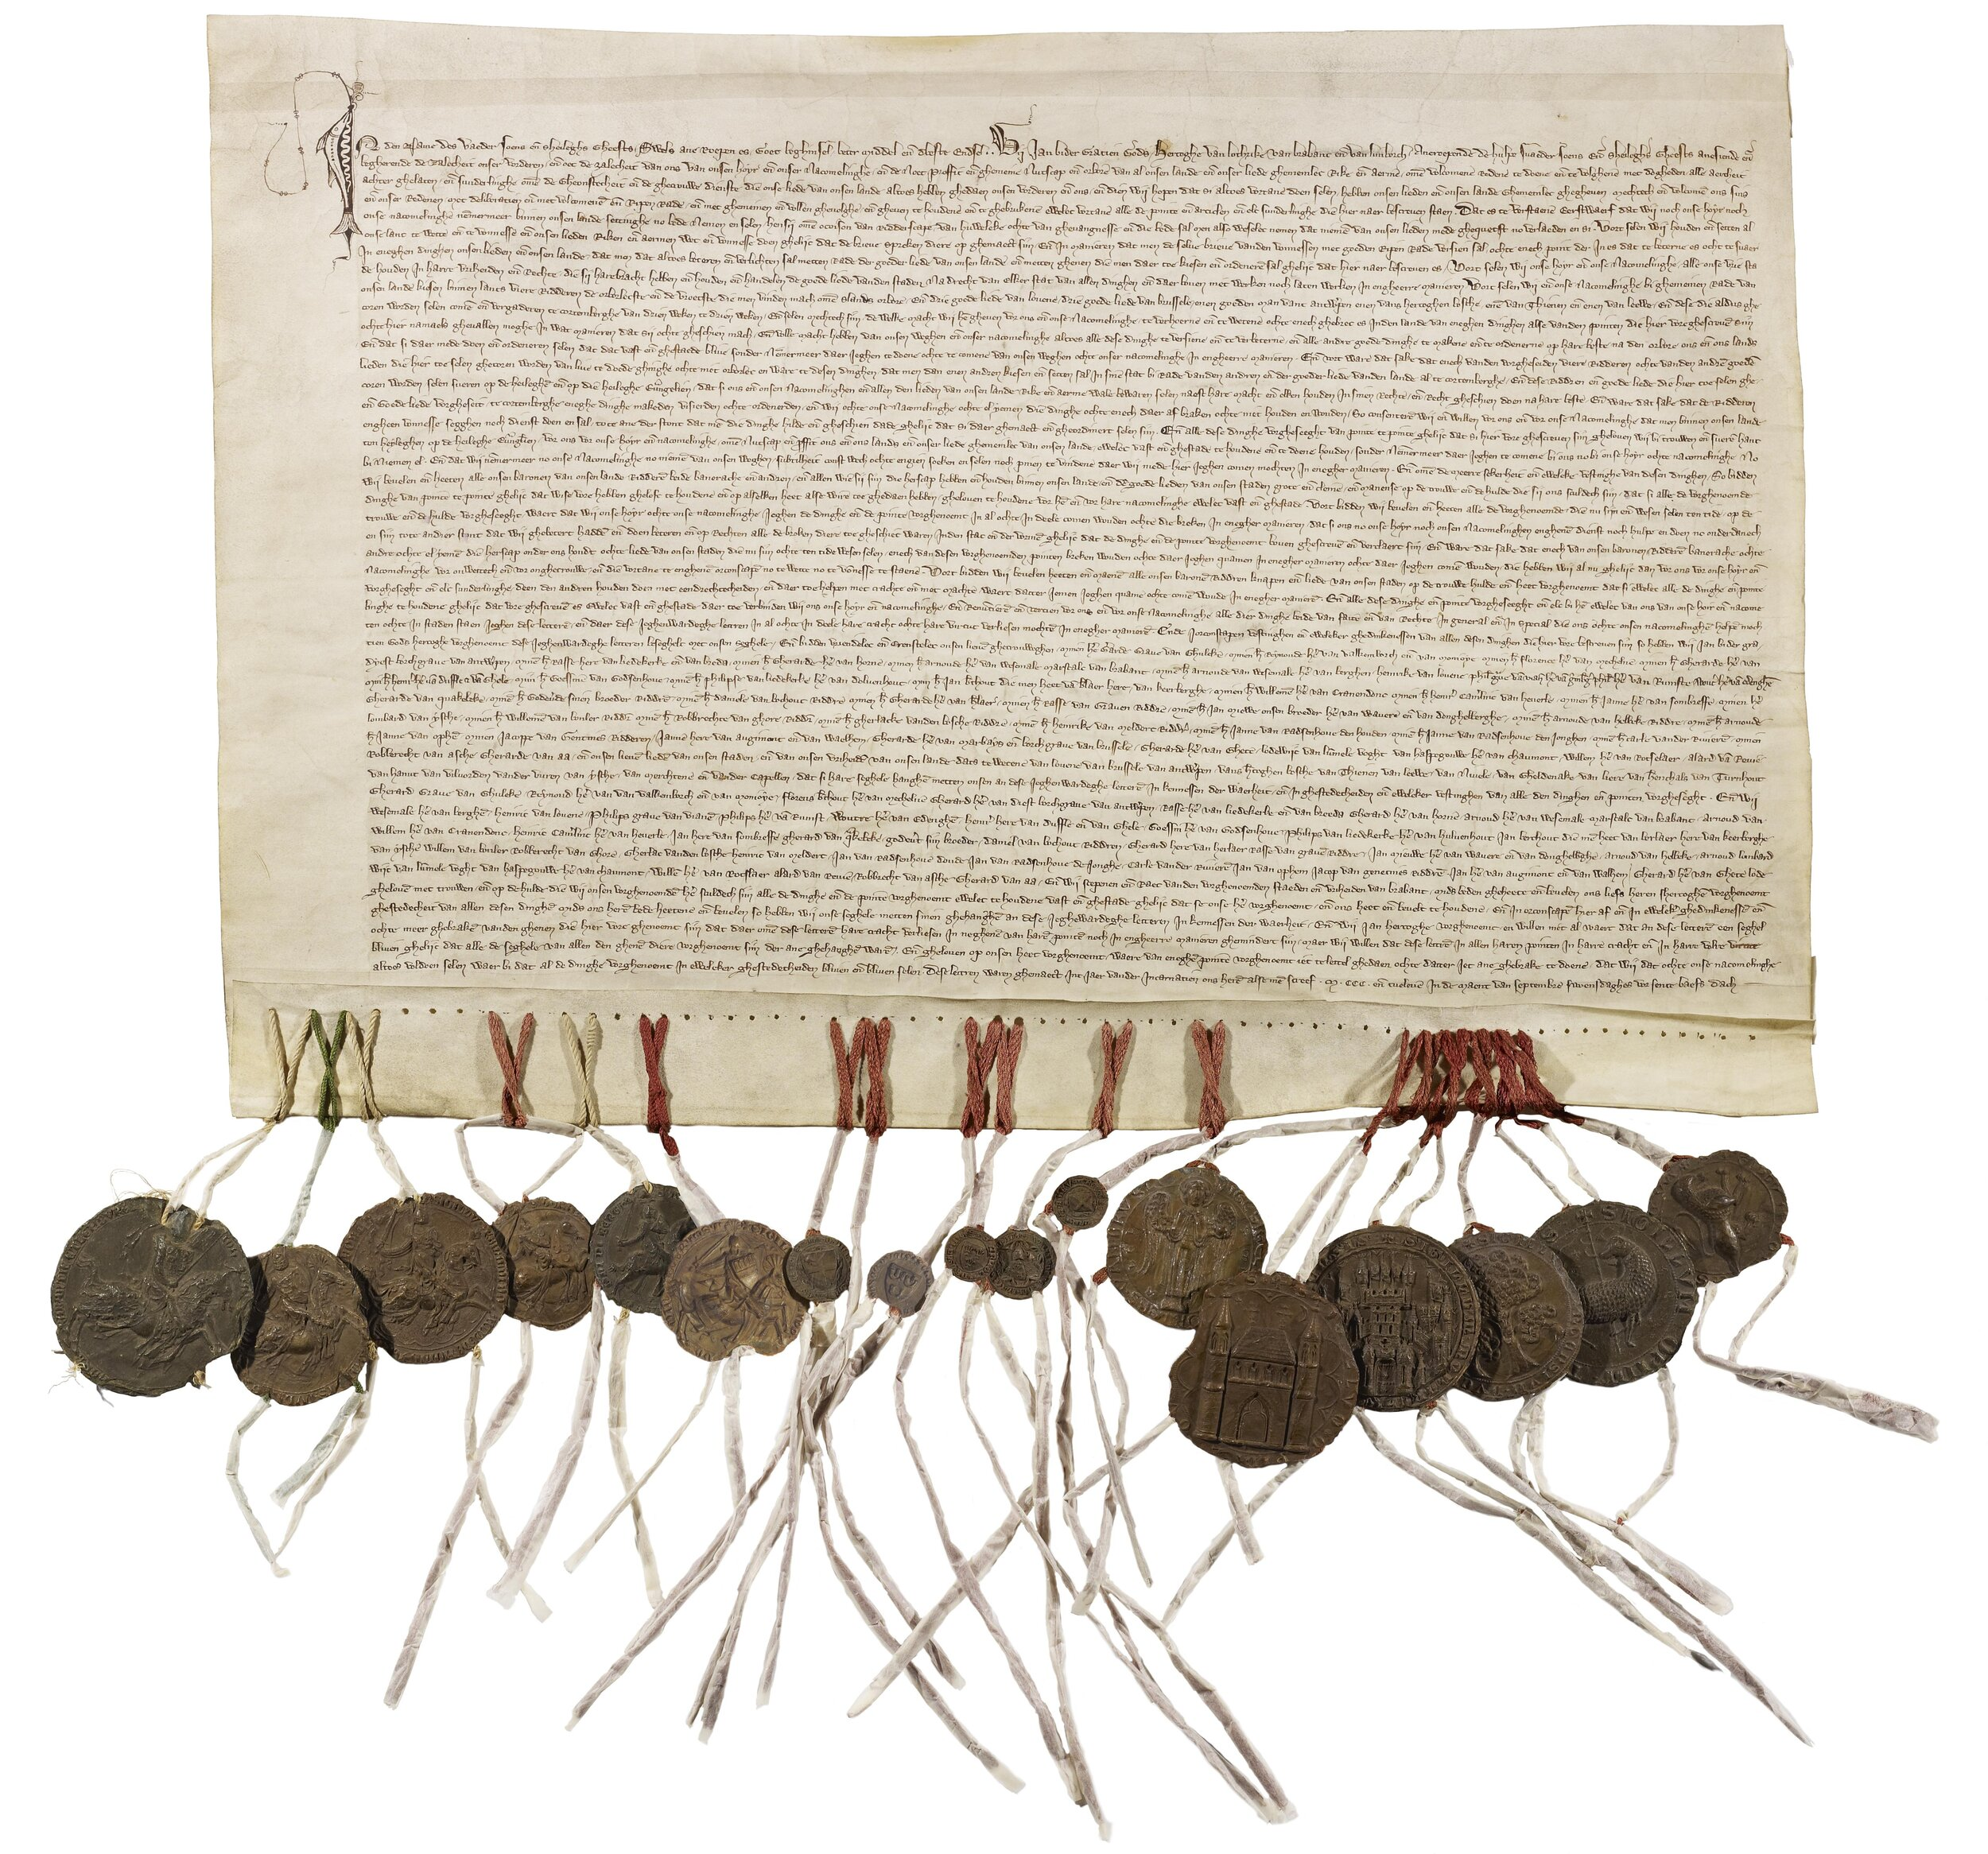 The Charter of Kortenberg, with all the bells and whistles attached.  Christiaan Janssens [CC BY-SA 4.0 (https://creativecommons.org/licenses/by-sa/4.0)]